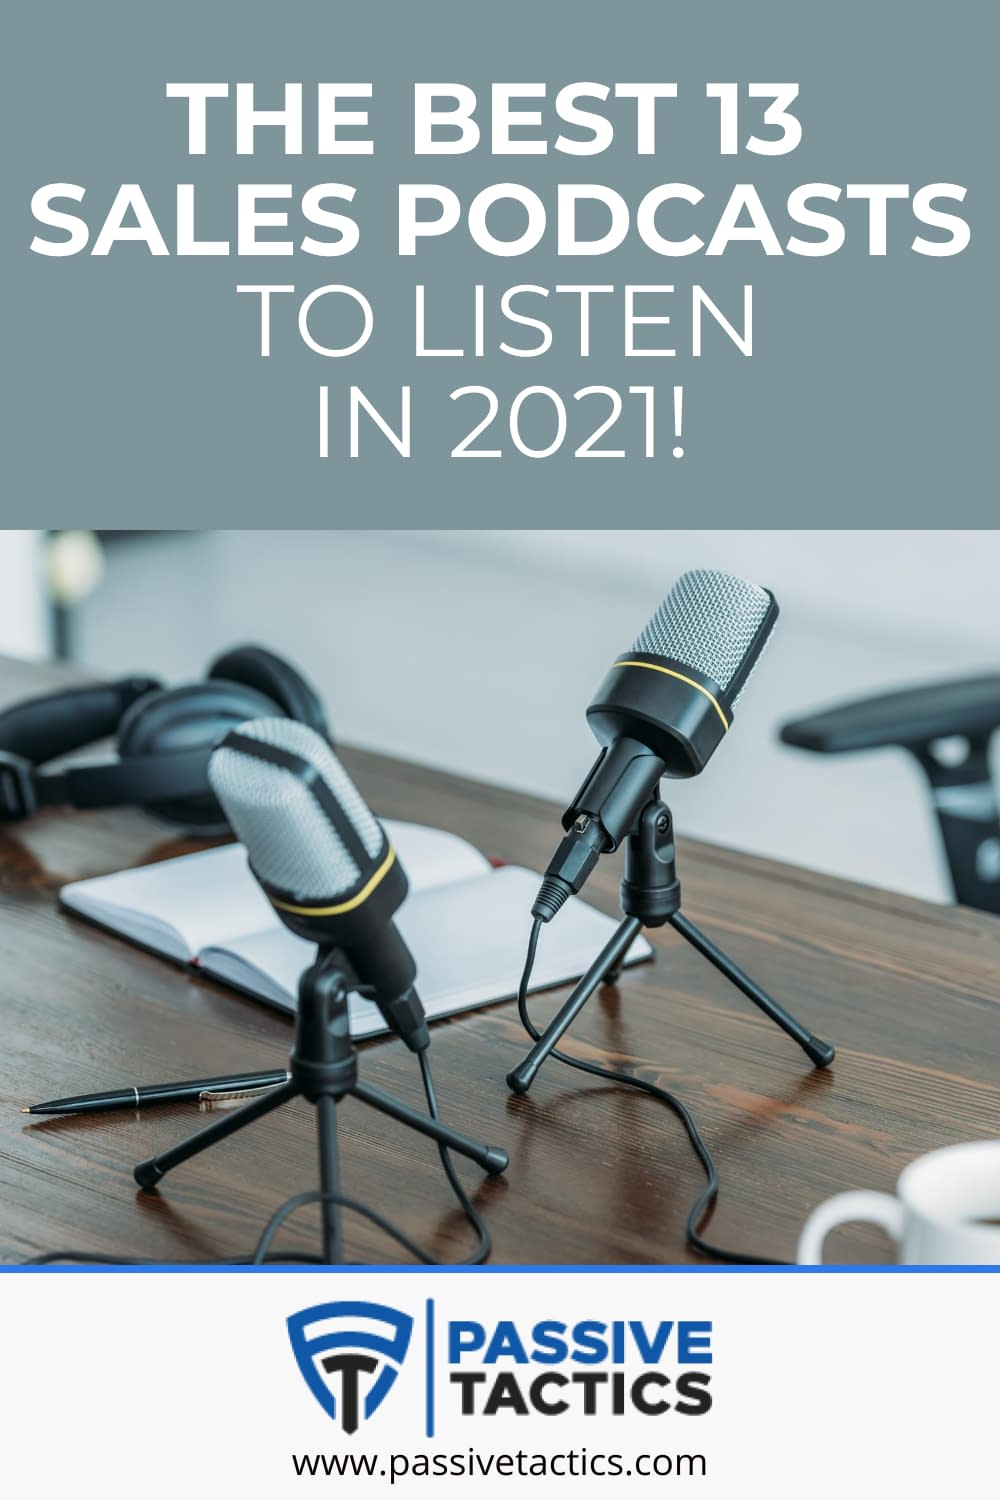 The Best 13 Sales Podcasts To Listen In 2021!